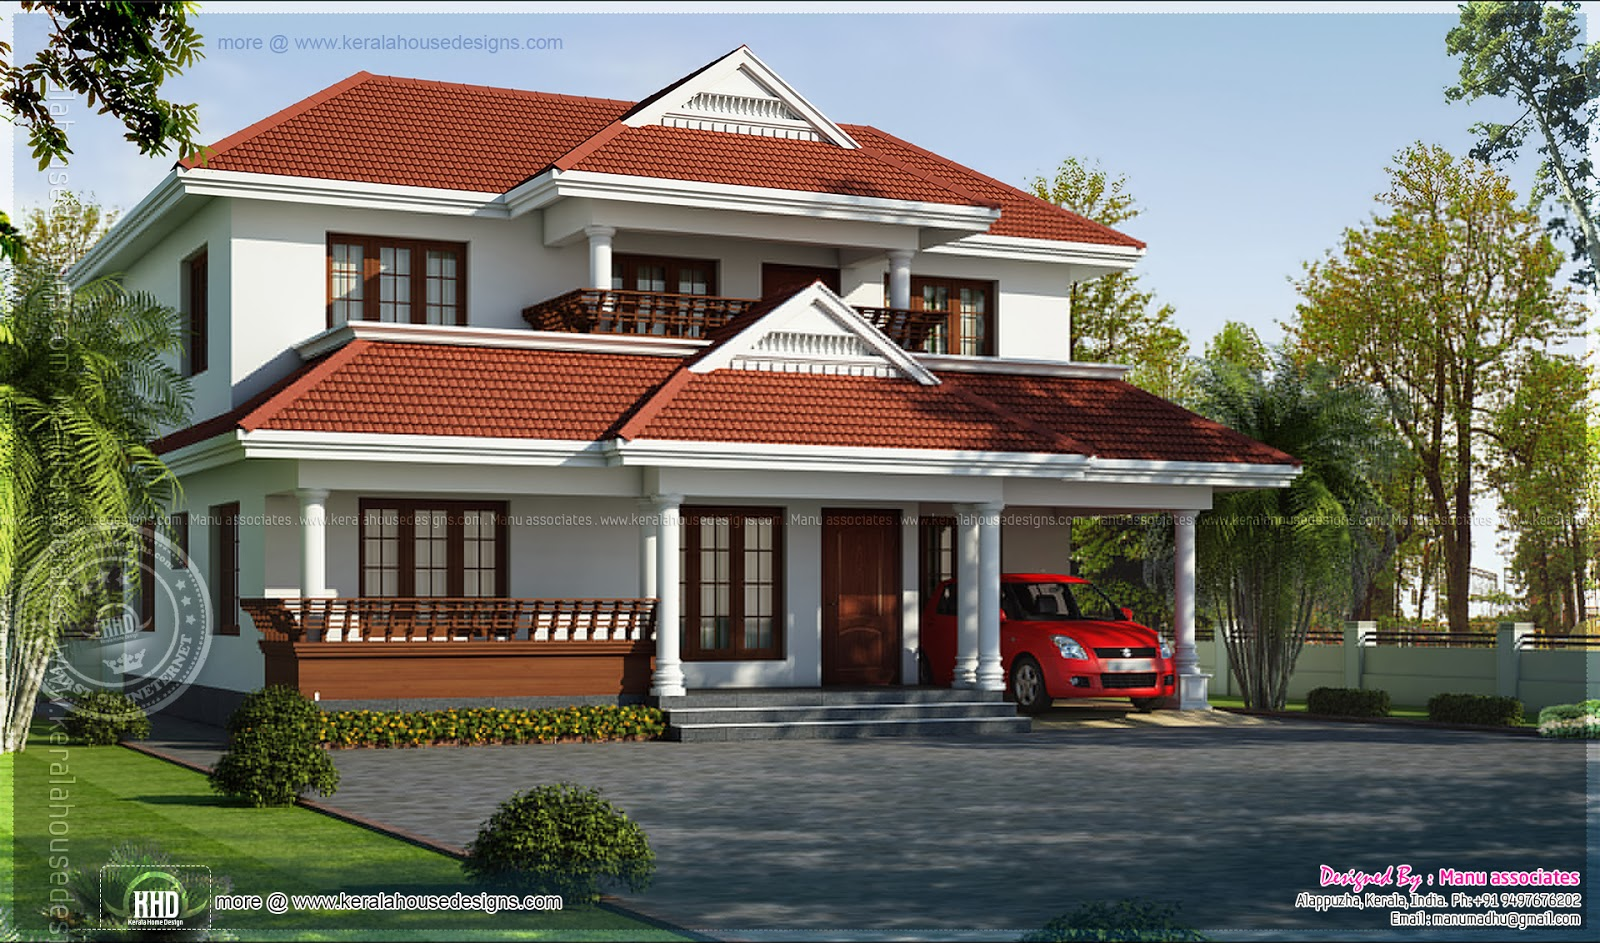 Indian house plans - Kerala exterior model homes ...